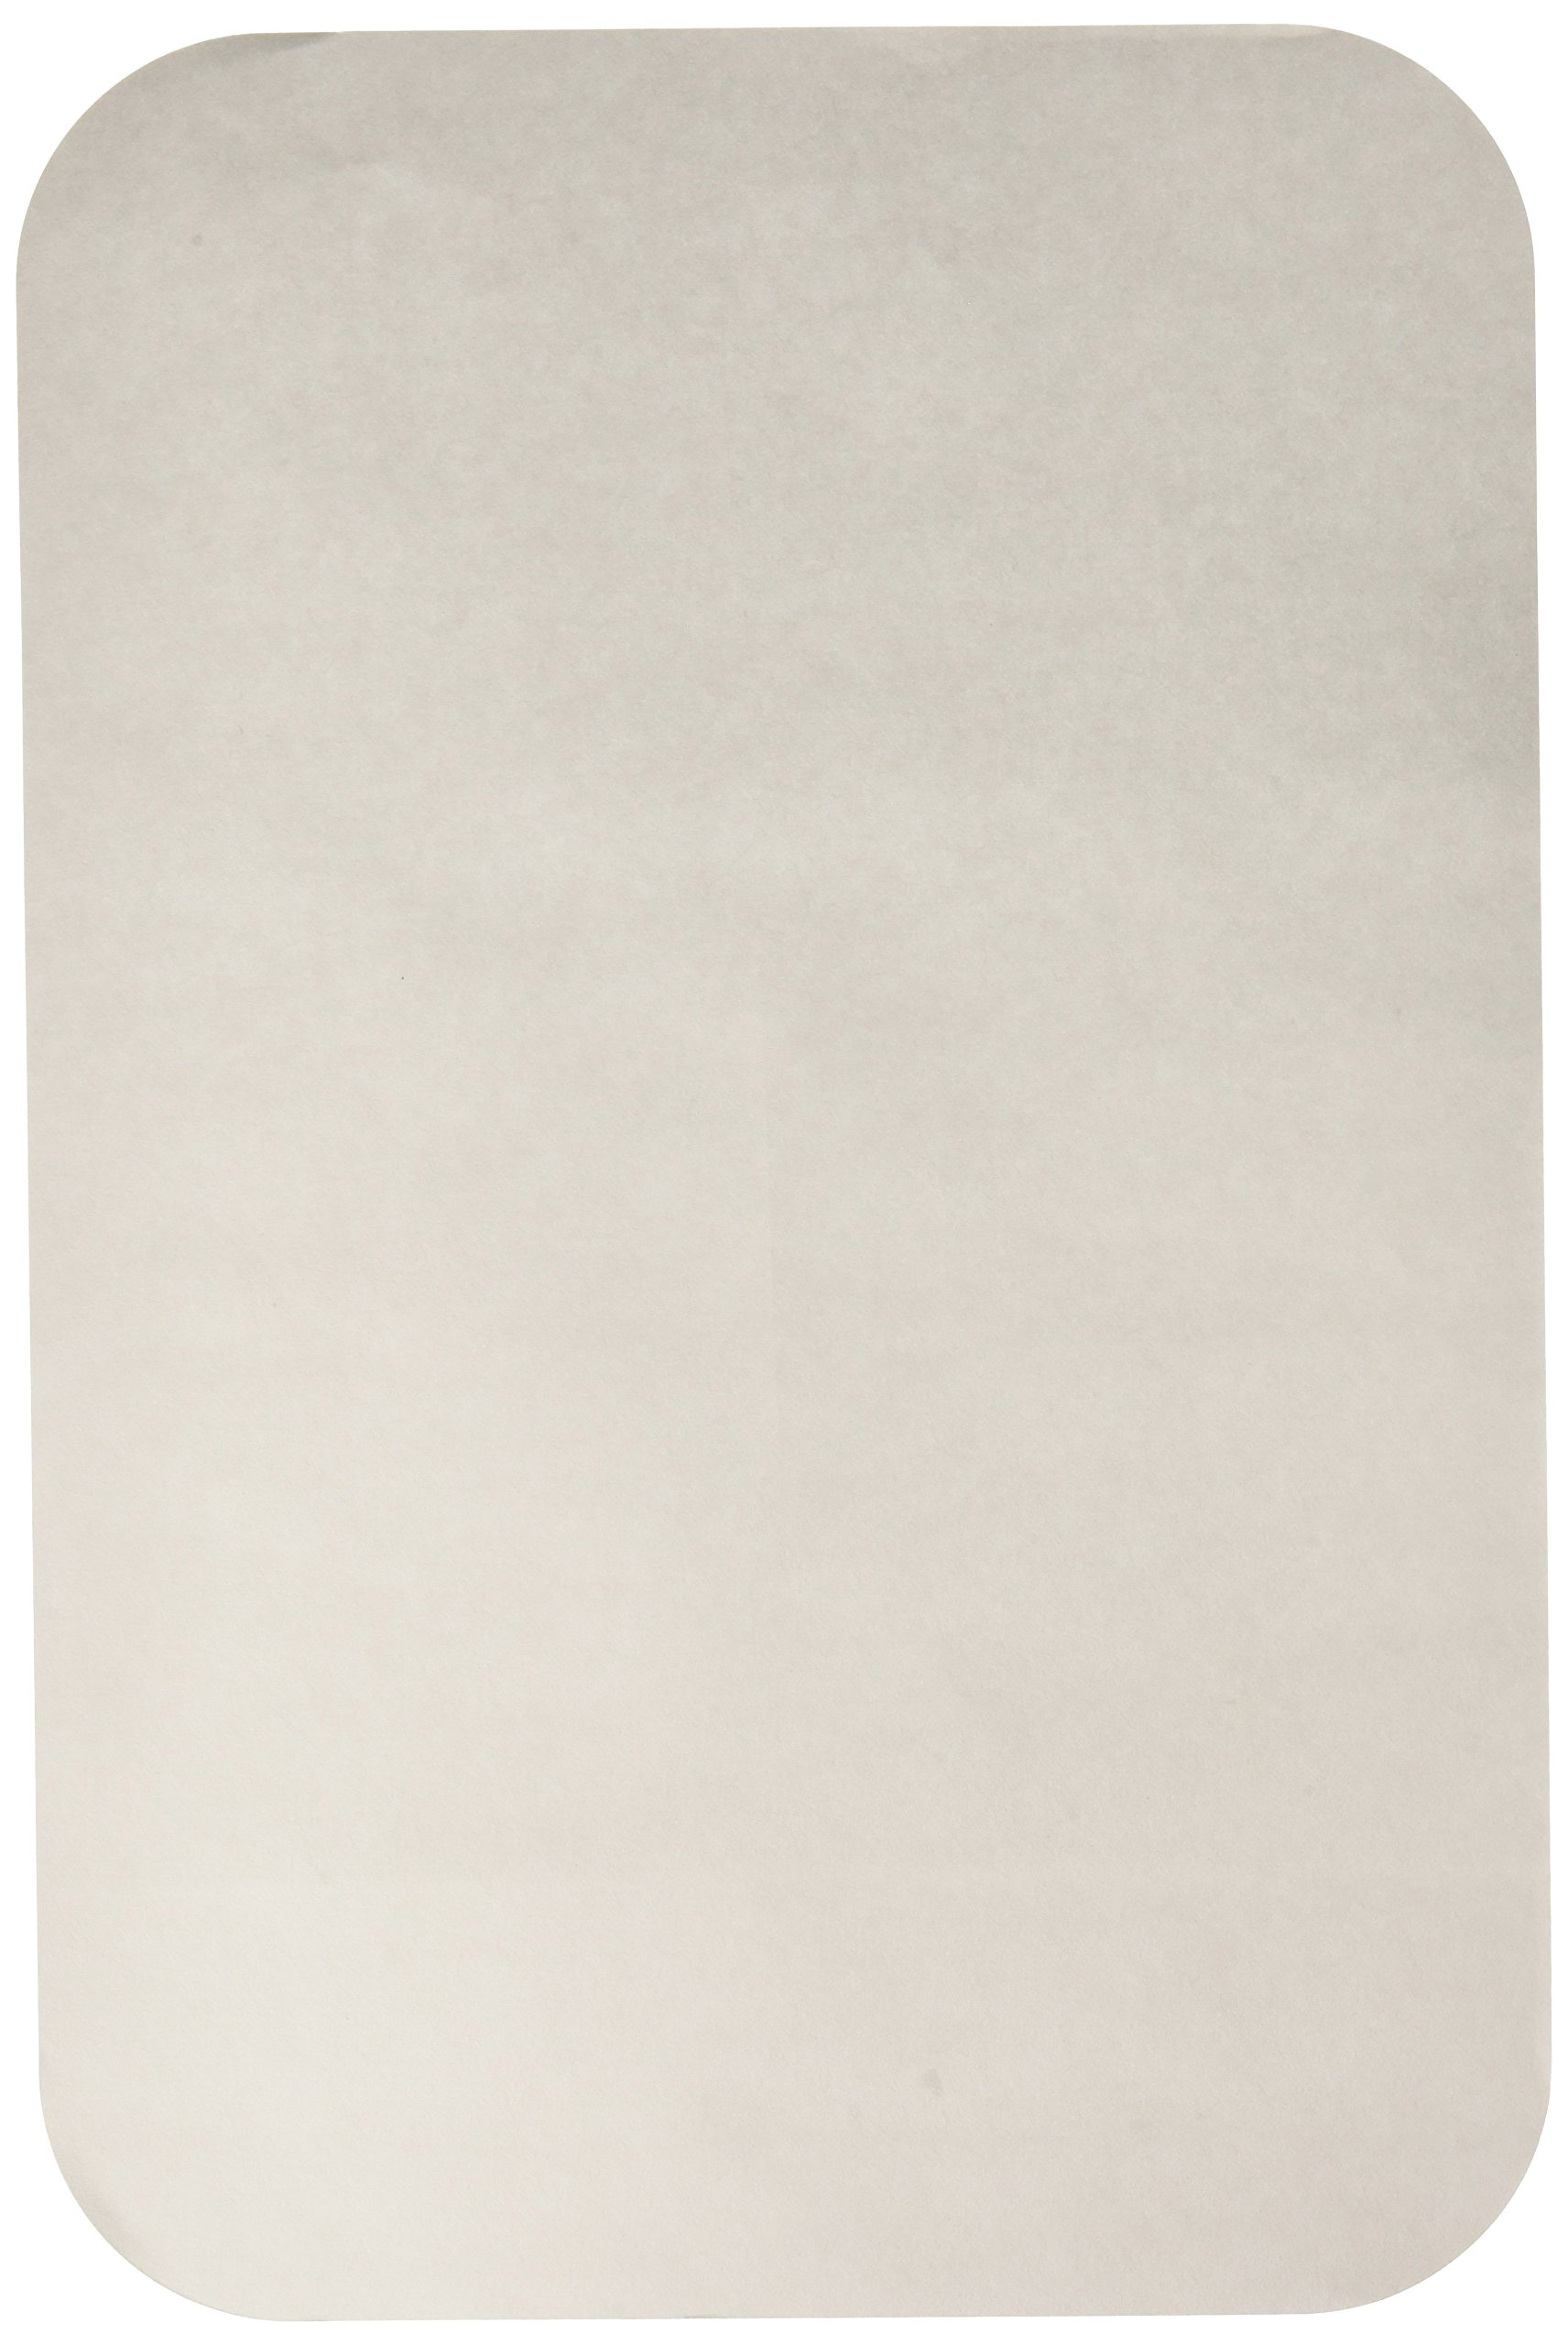 Crosstex FEWH Bracket Tray Cover, Size E - Midwest, 9'' x 13.5'', White (Pack of 1000)